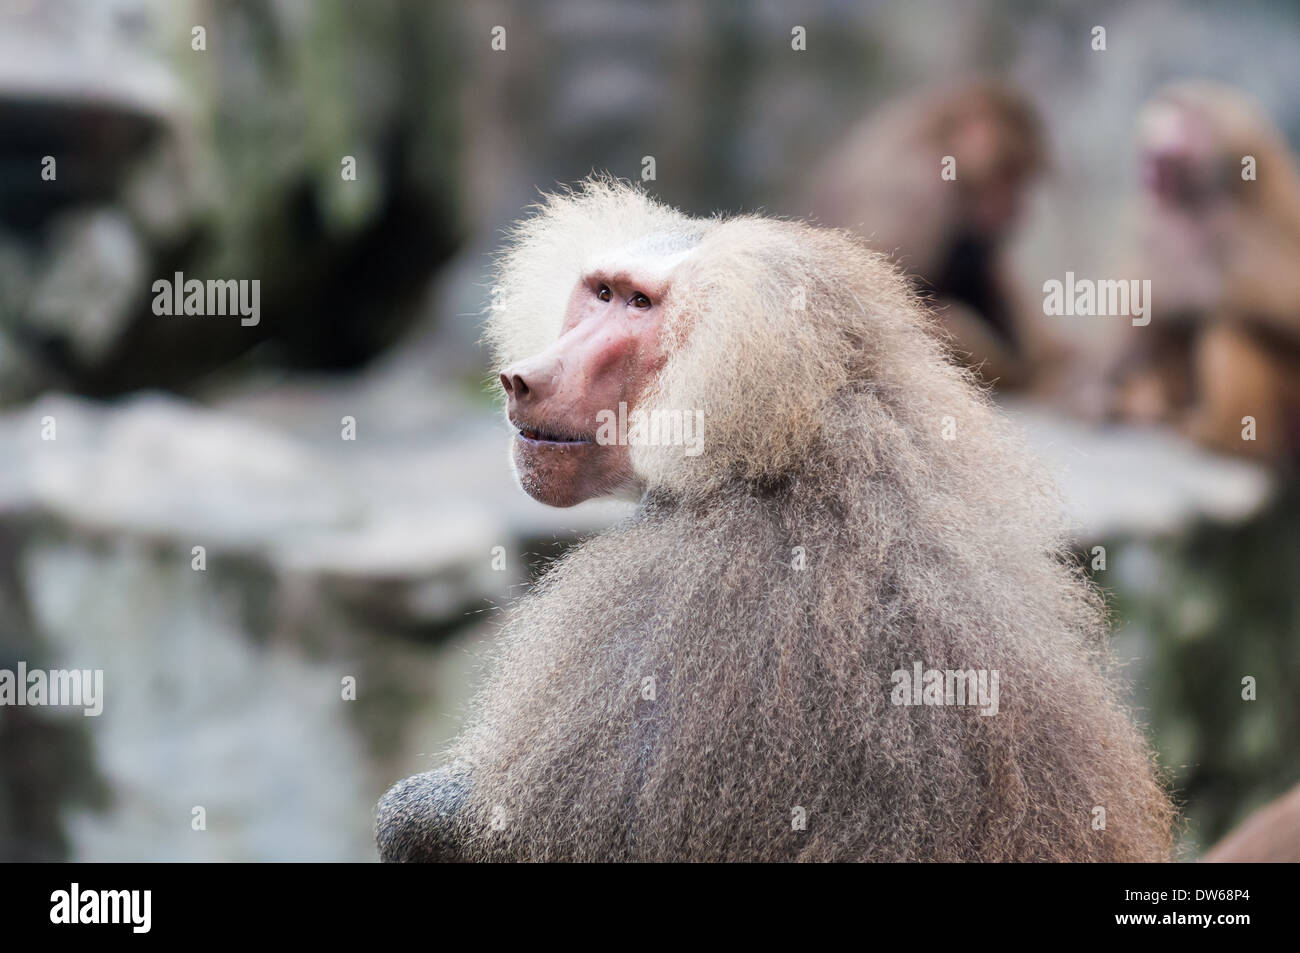 Hamadryas baboons at the Singapore Zoo. - Stock Image